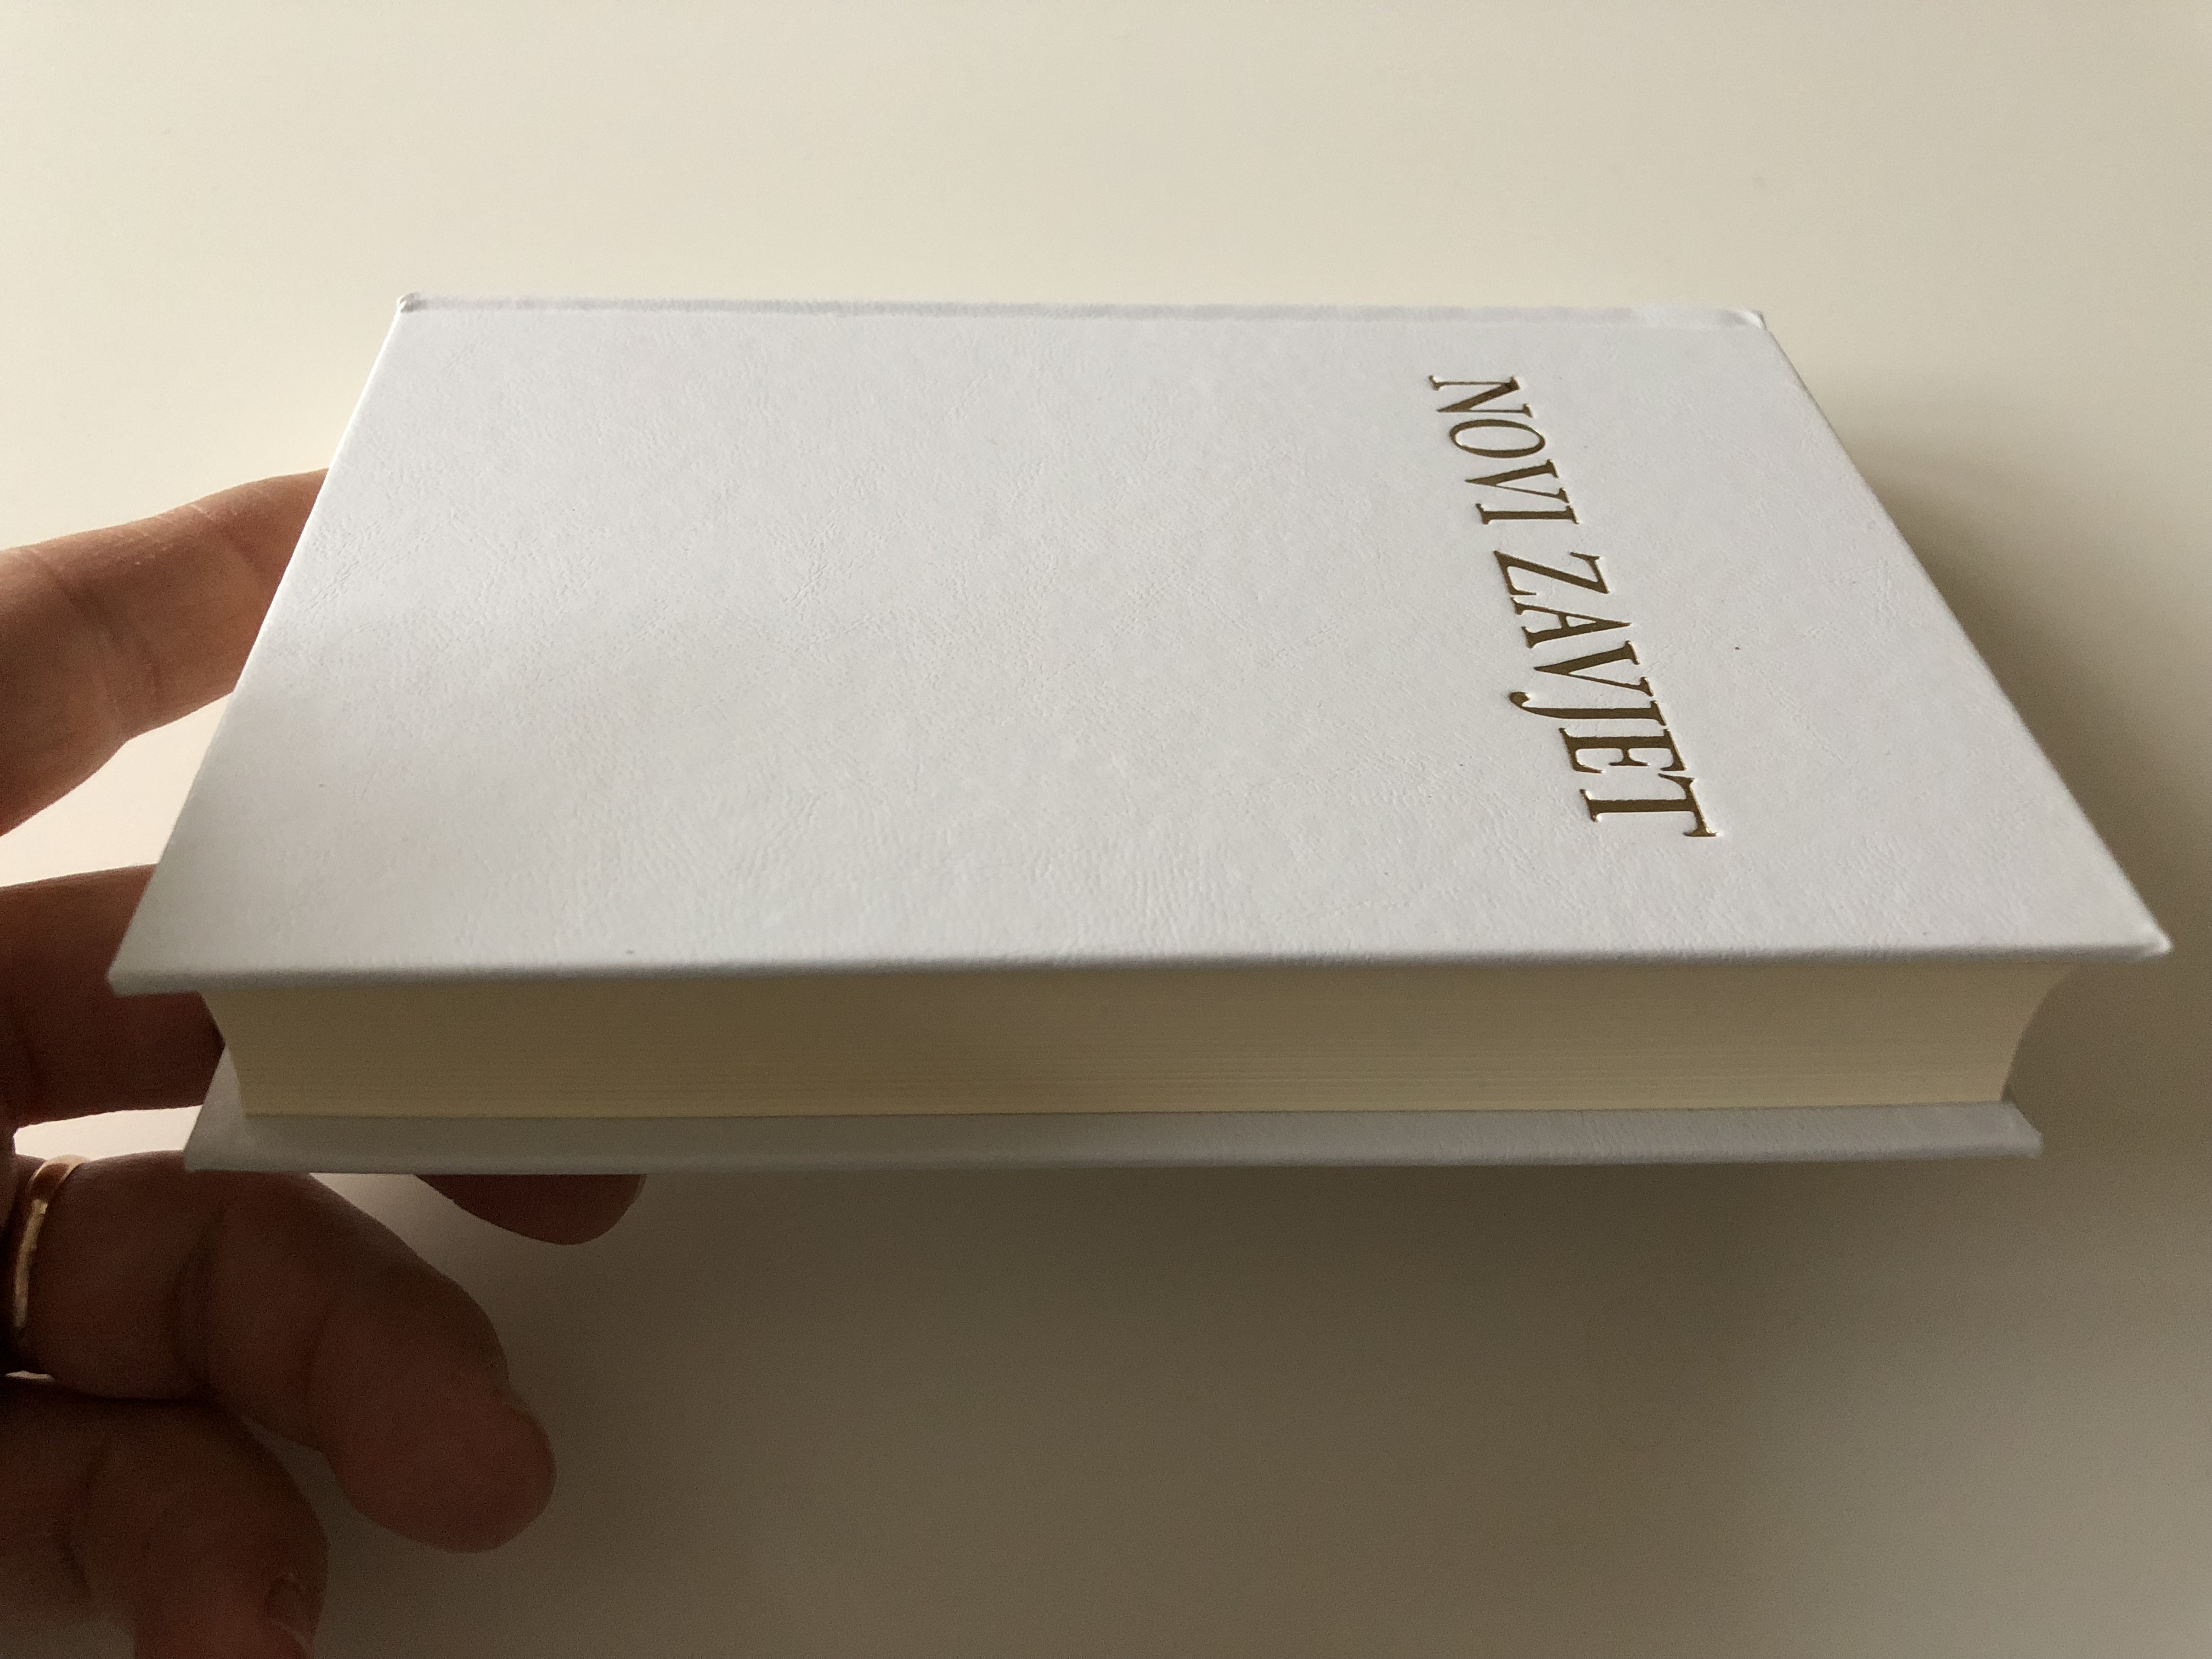 novi-zavjet-the-new-testament-in-croatian-language-hardcover-white-hbd-2013-12-.jpg